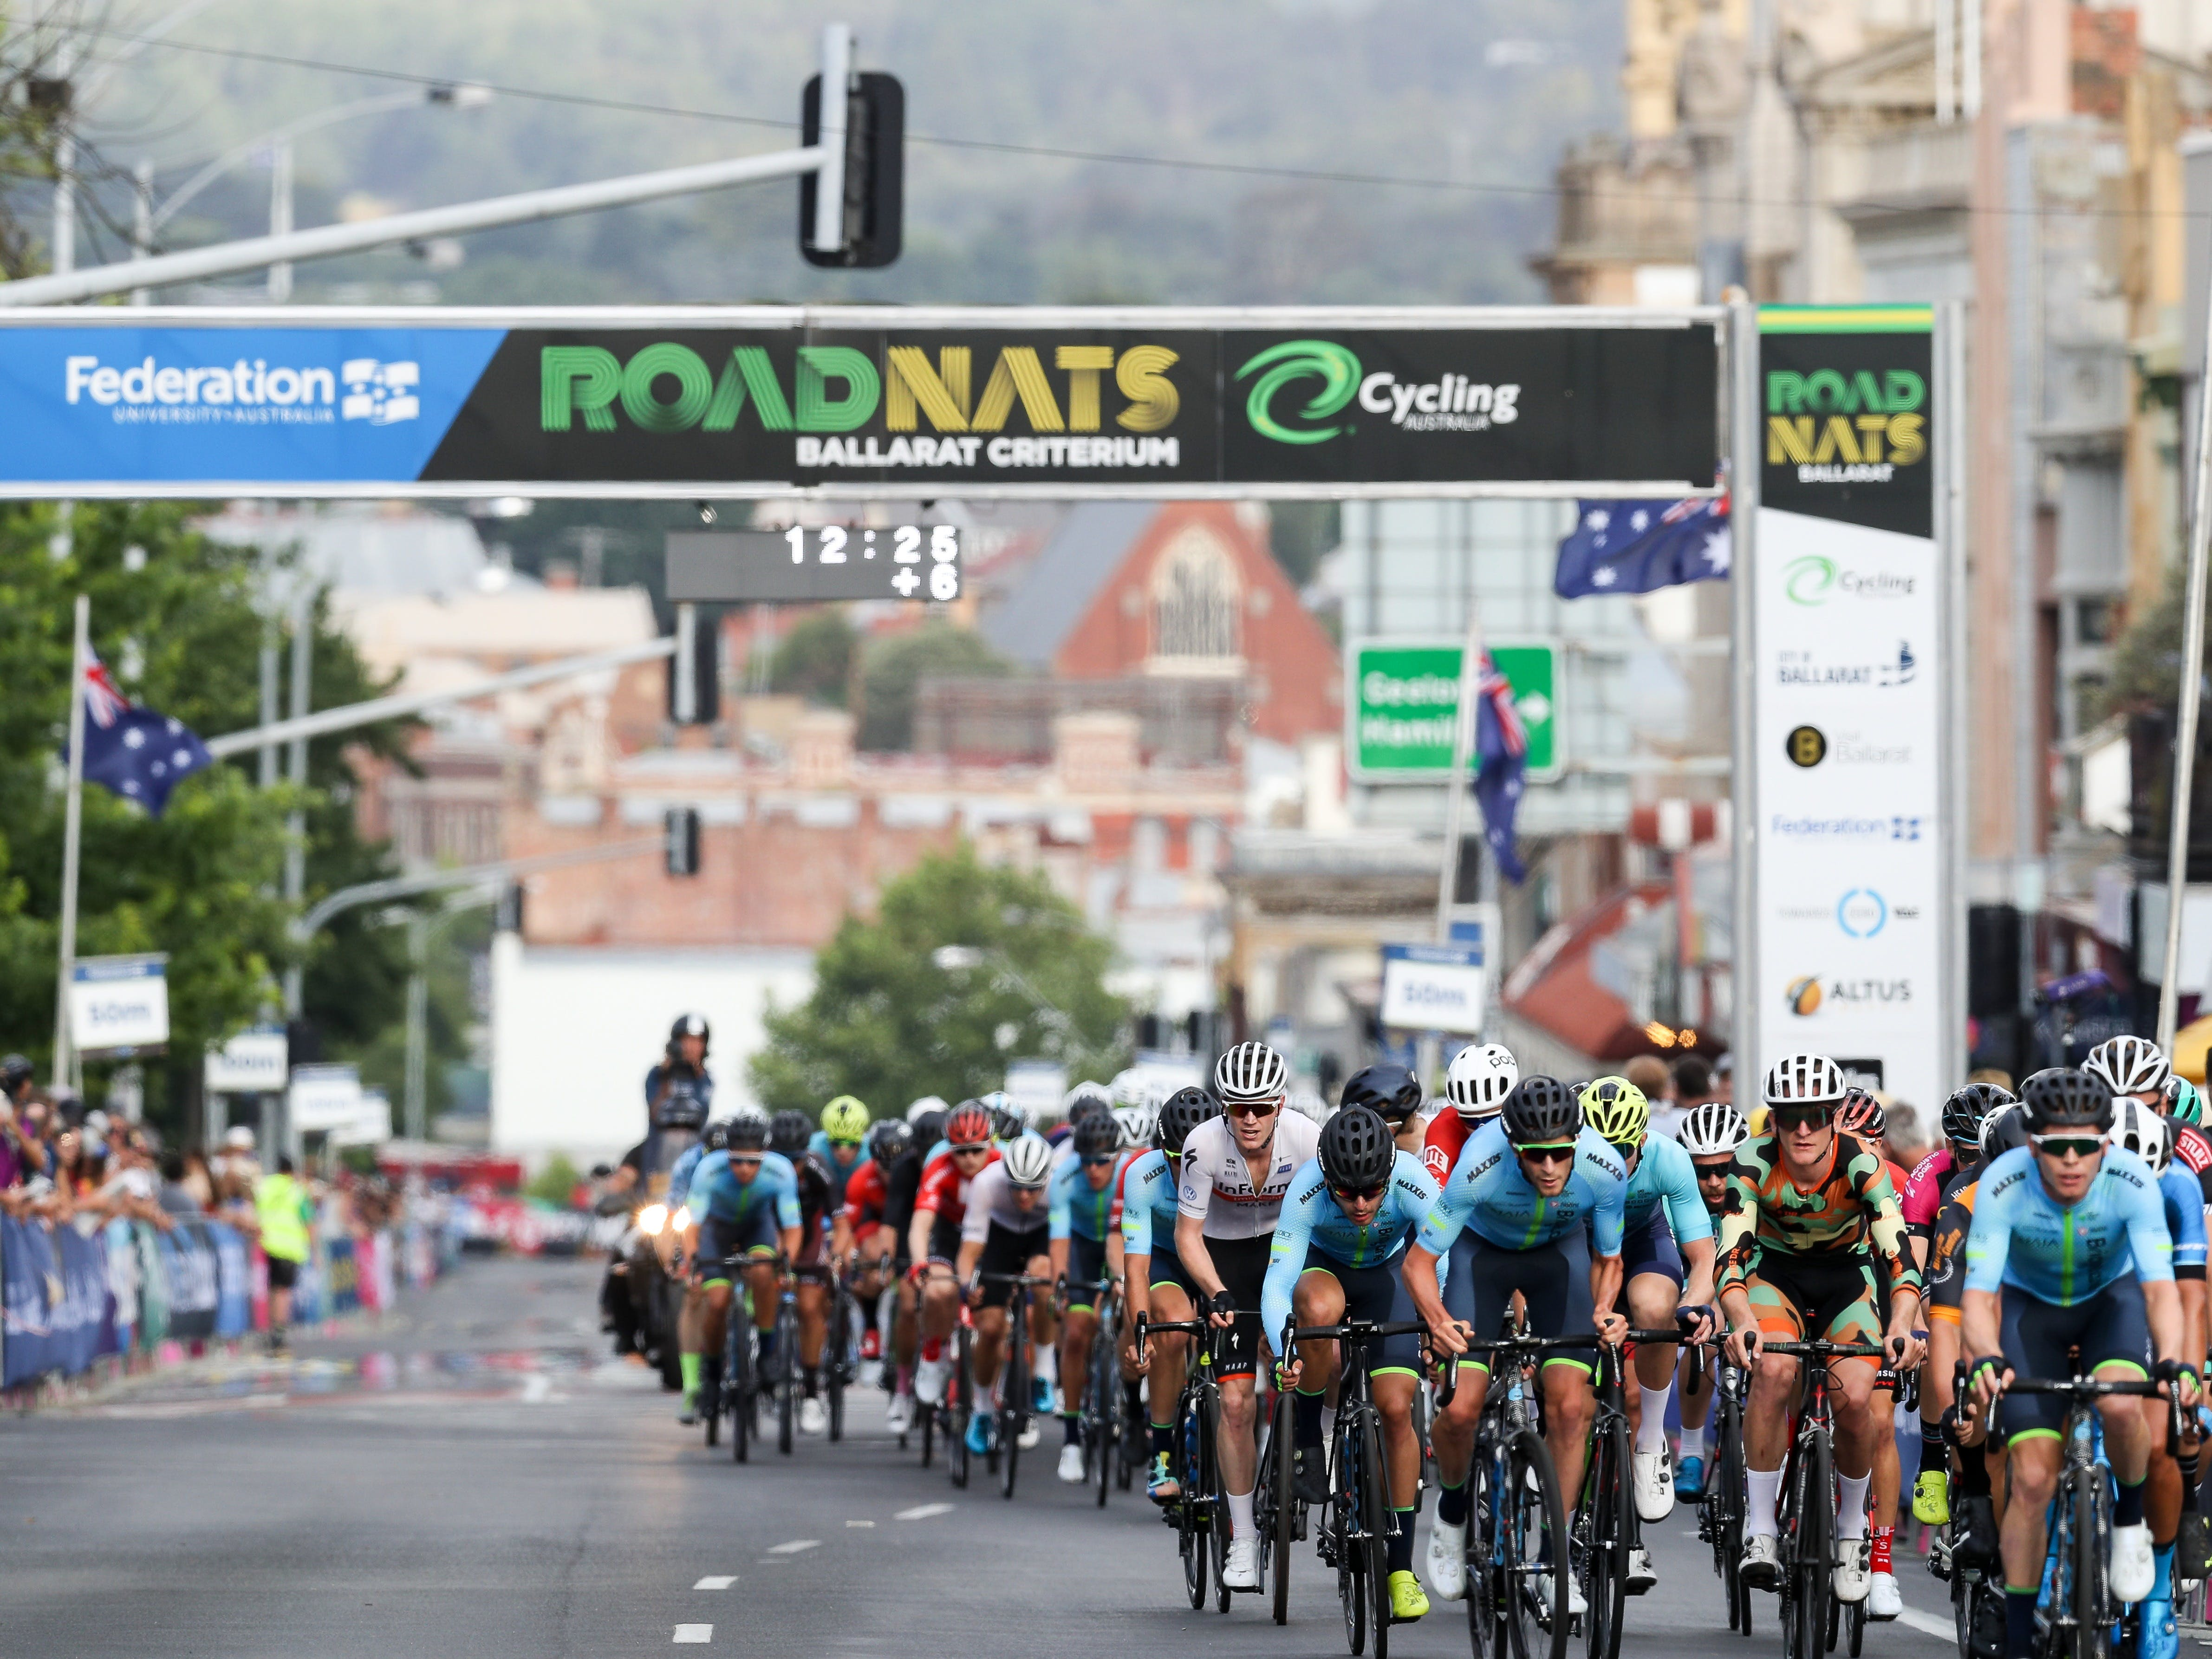 Federation University Criterium National Championships - Ballarat - St Kilda Accommodation